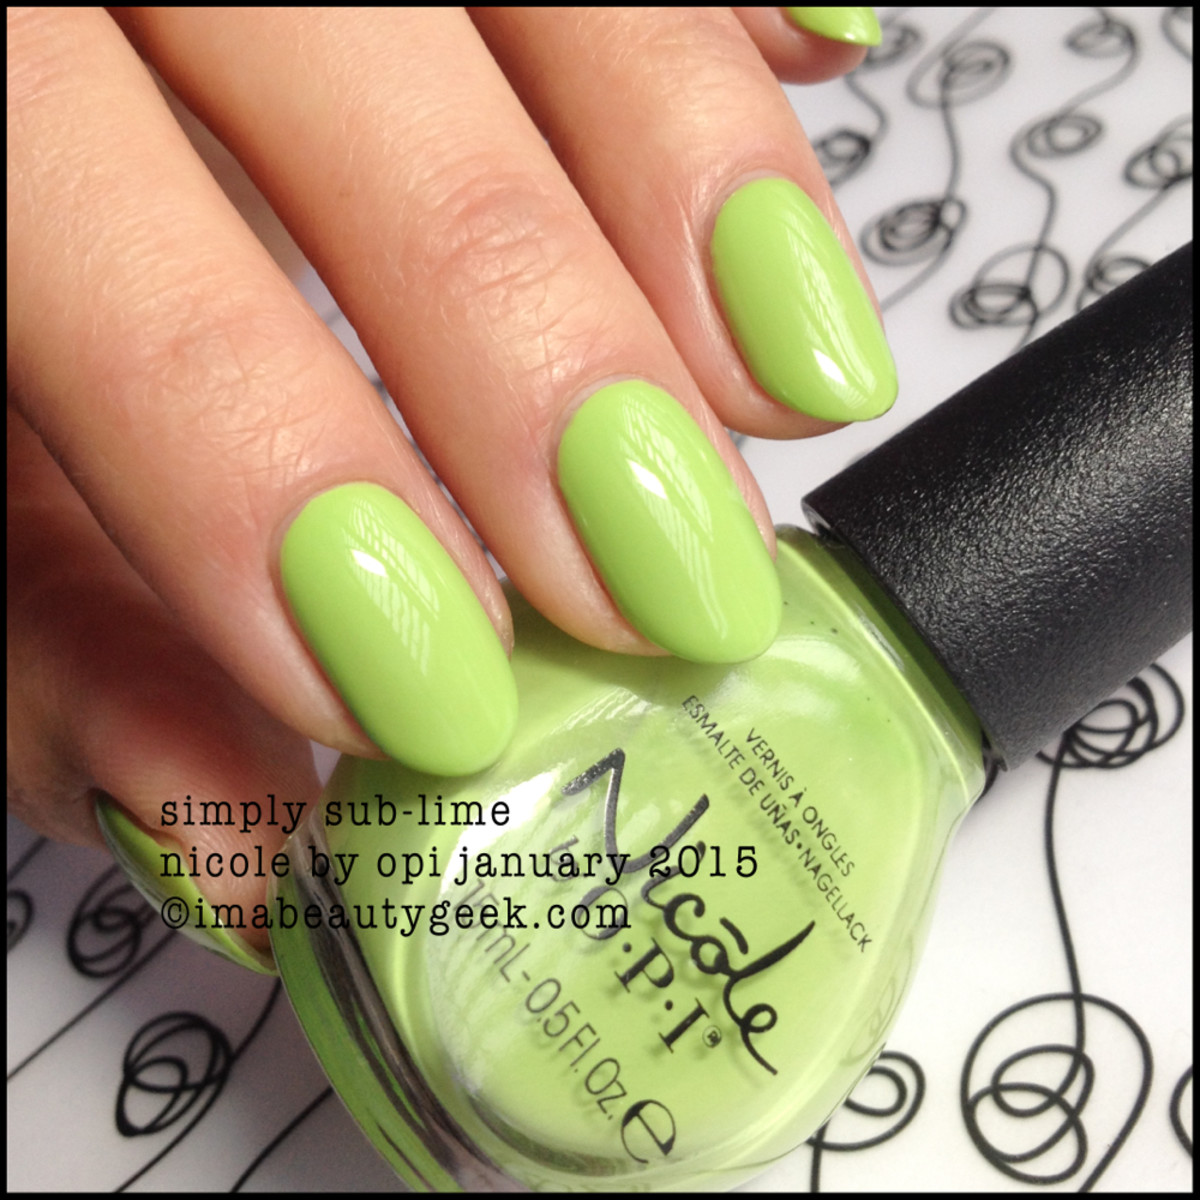 Nicole by OPI Simply Sub-Lime